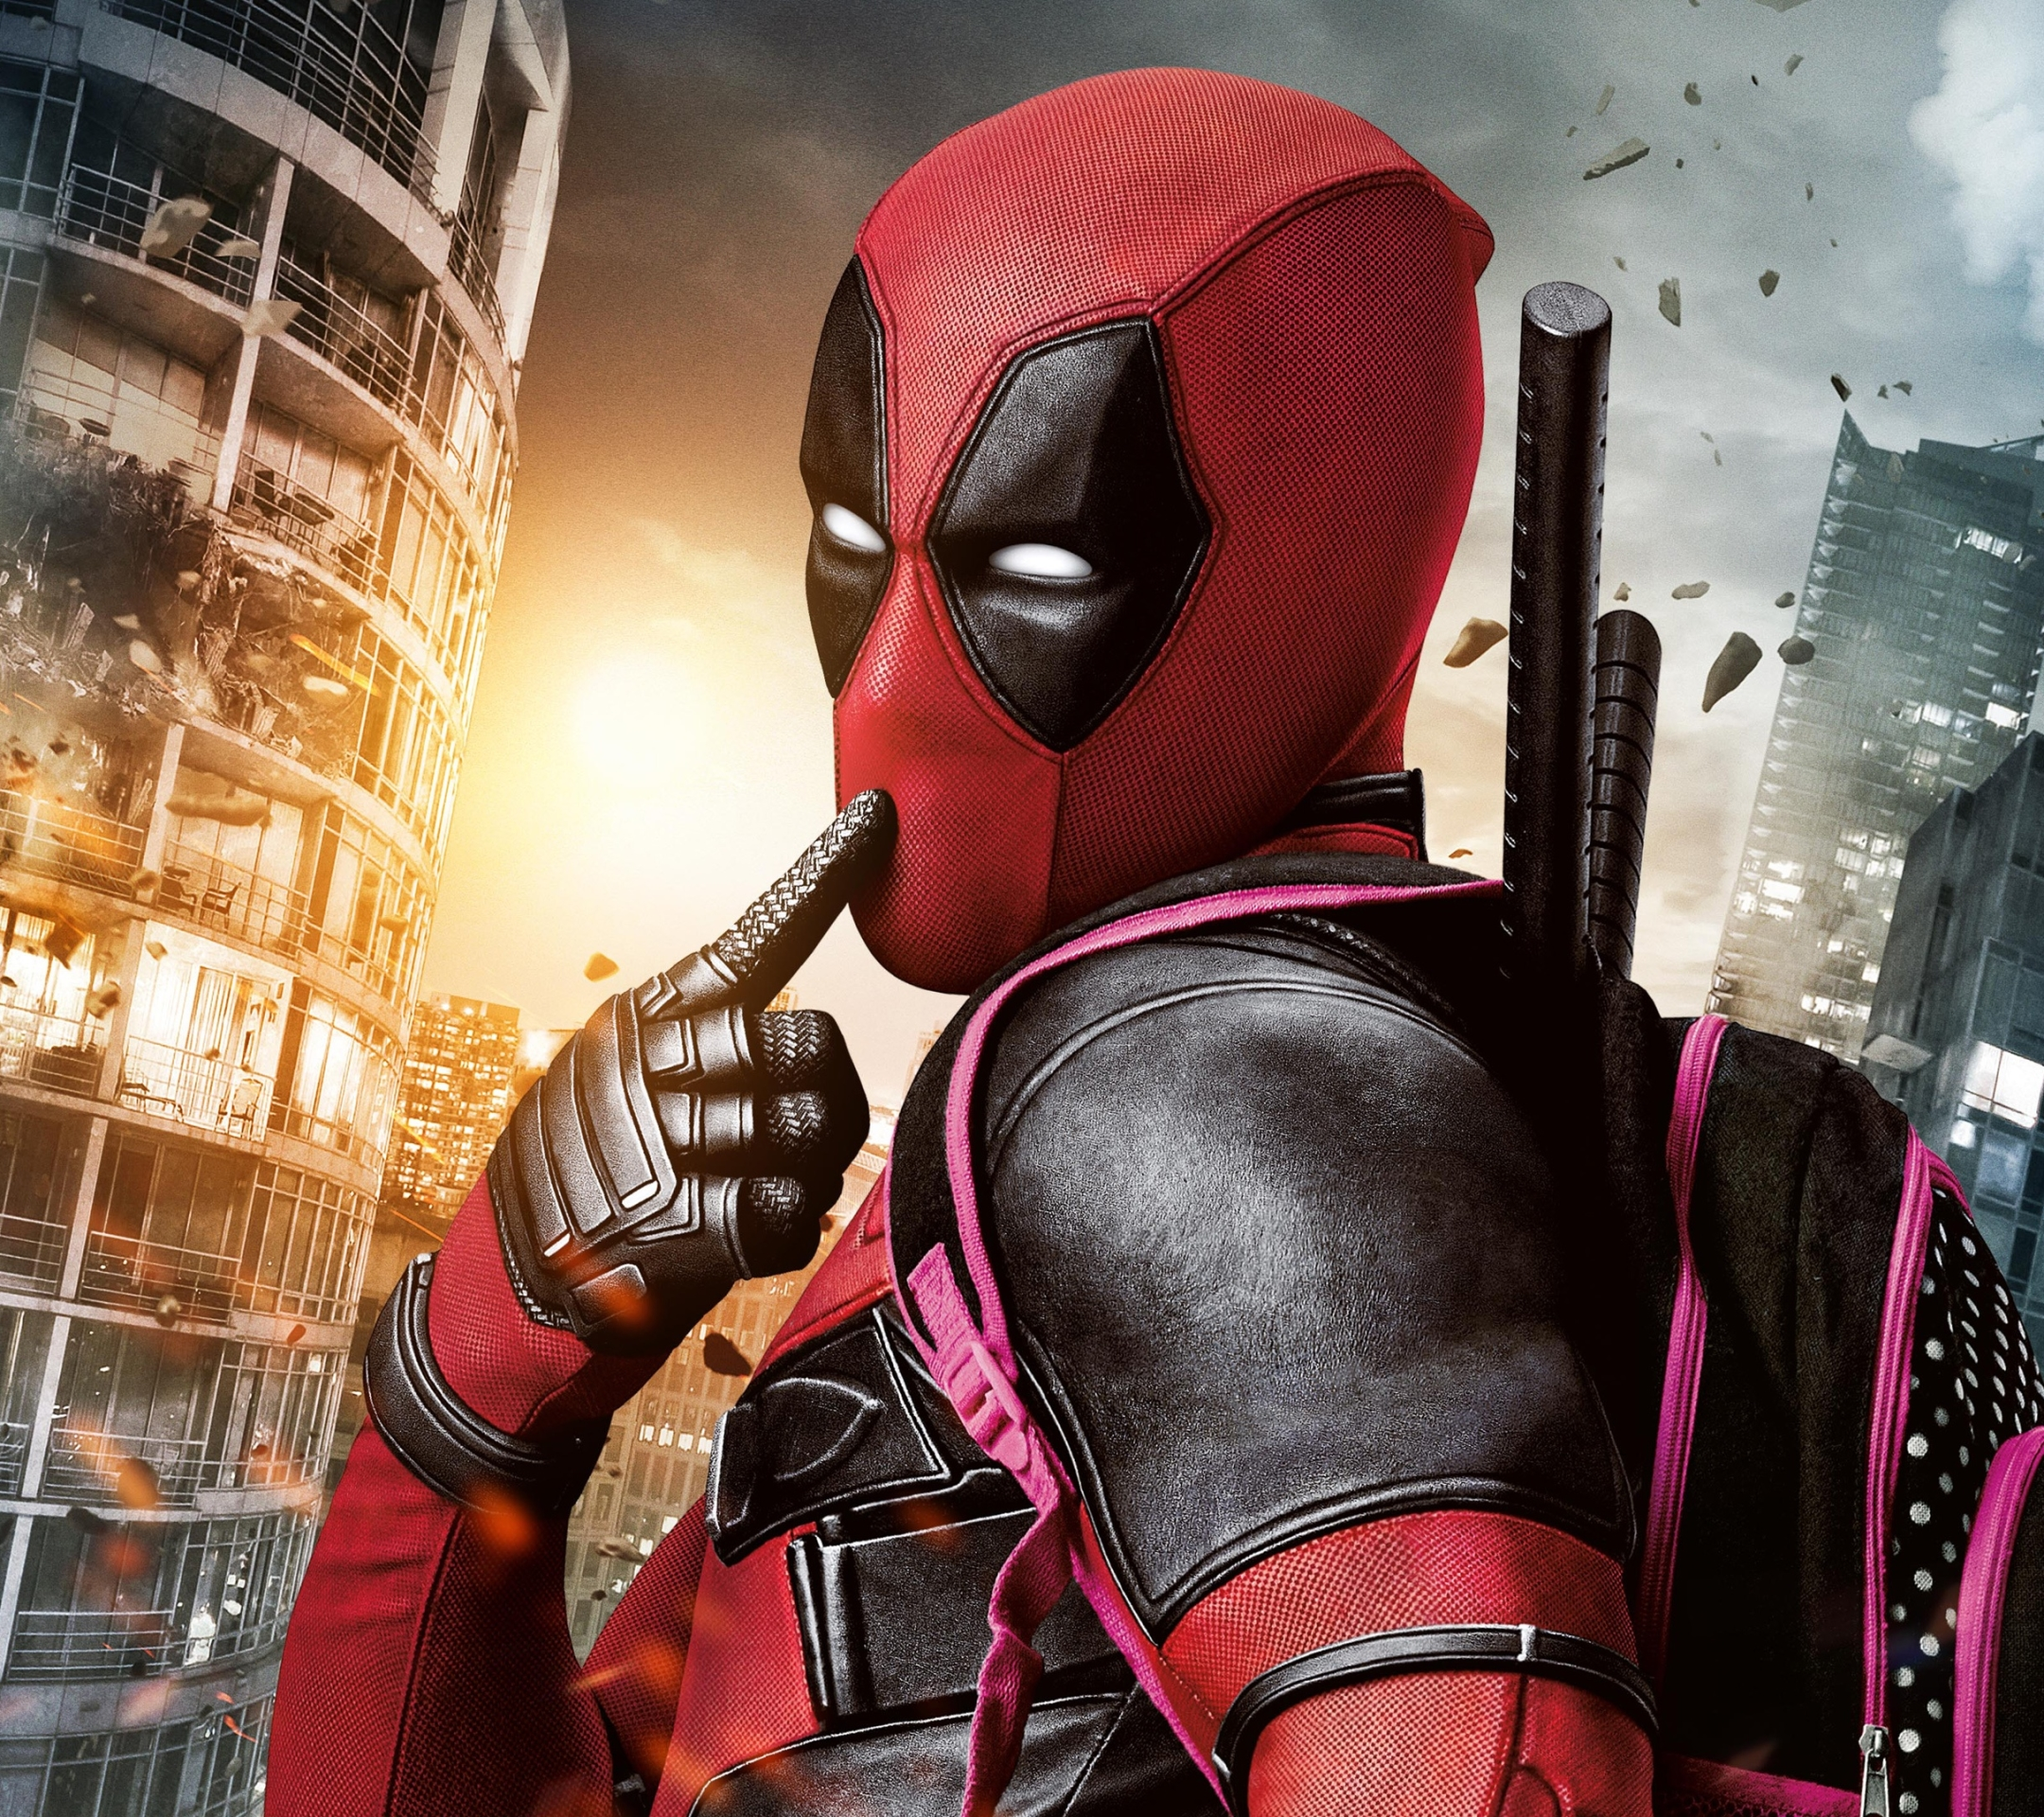 Deadpool 2 Movie Ultra Hd Desktop Mobile Wallpaper Download High Resolution 4k Wallpaper